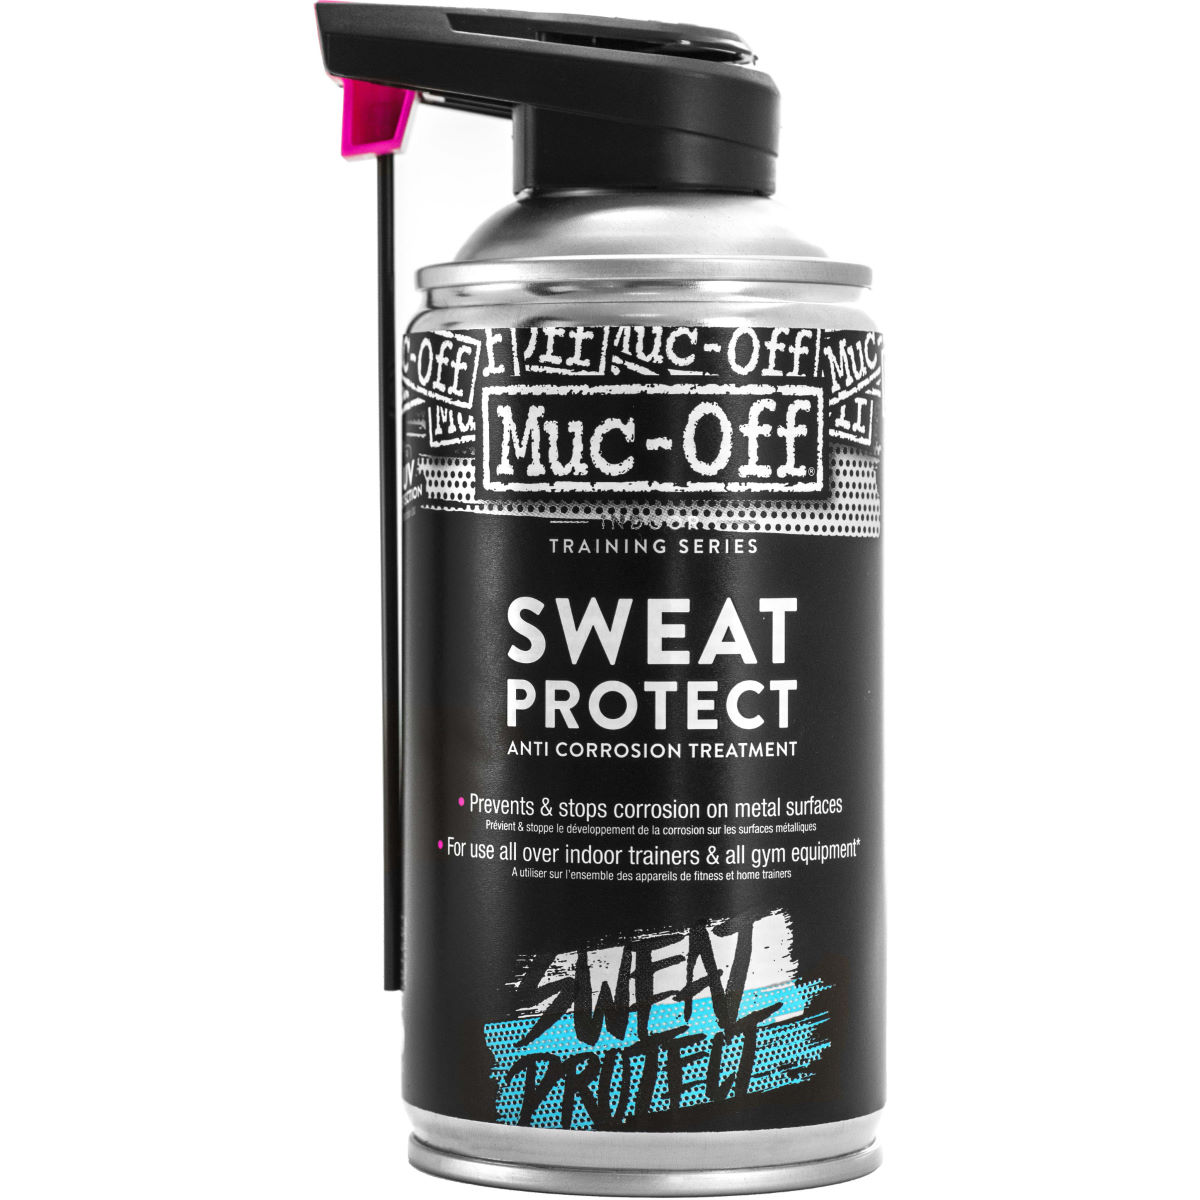 Muc-Off Sweat Protect Cleaning Products